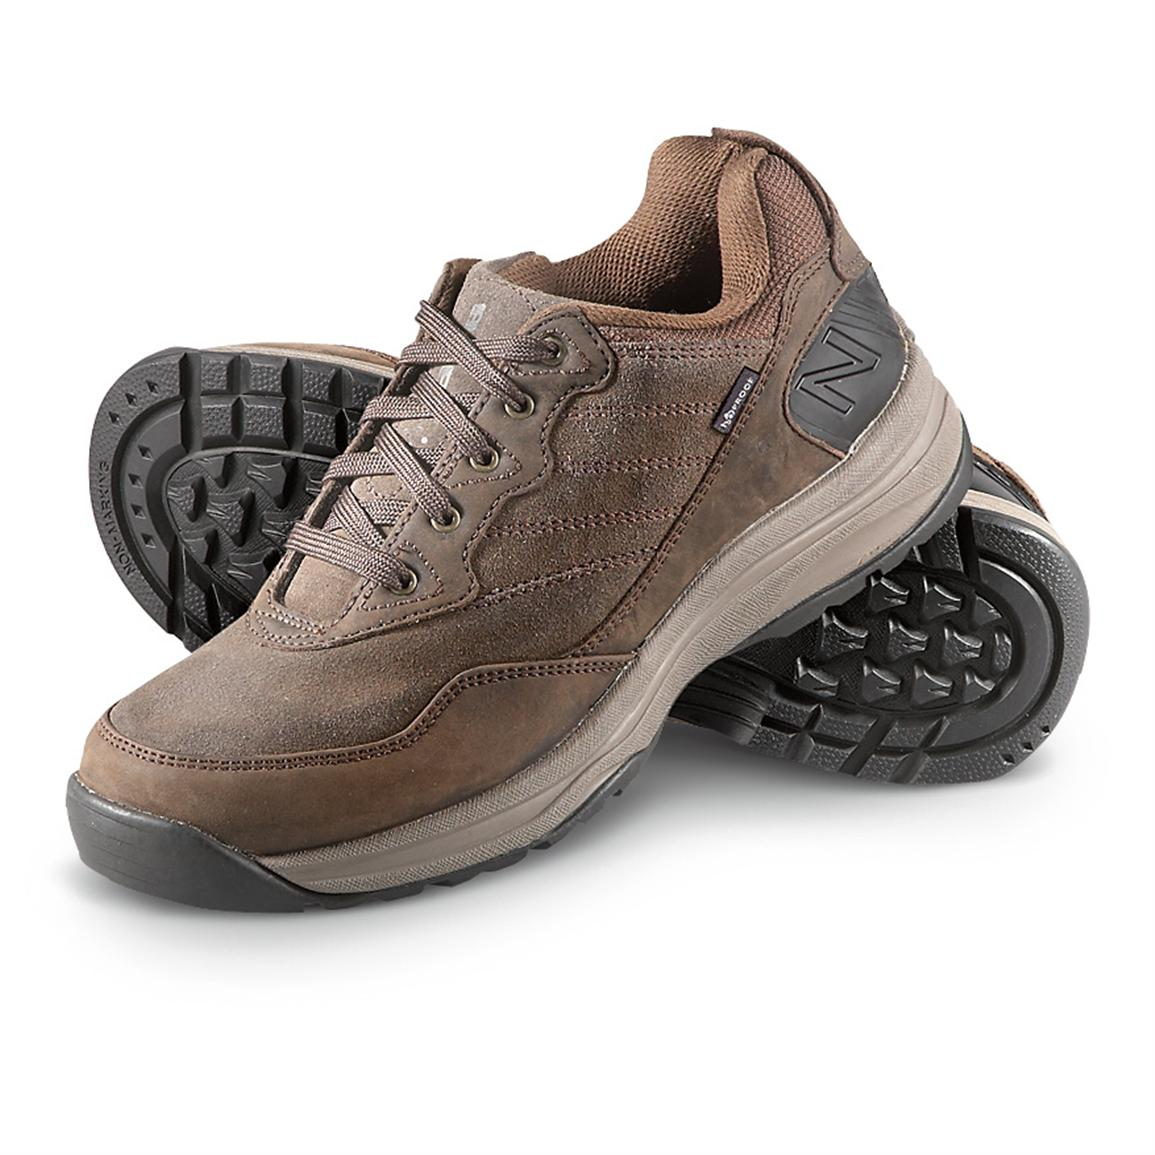 Most Comfortable Trendy Walking Shoes